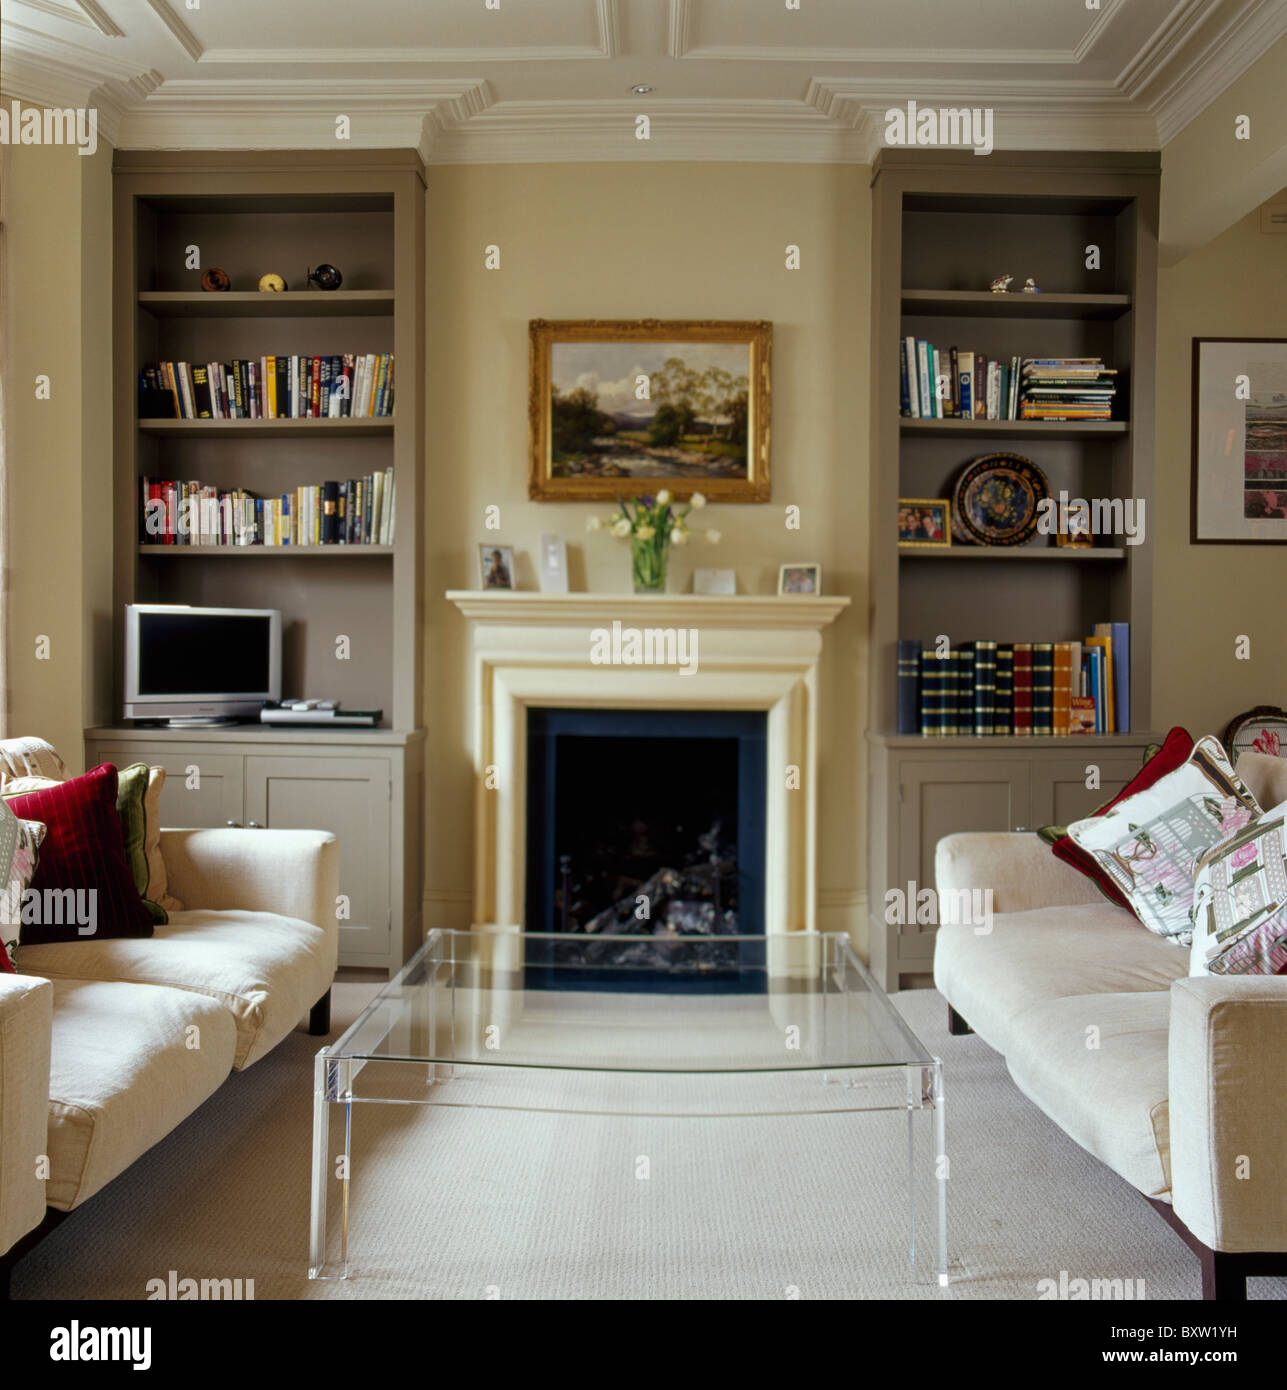 Modern Perspex Table And Cream Sofas In Traditional Cream Living Room With  Alcove Shelves On Either Side Of Fireplace Part 95